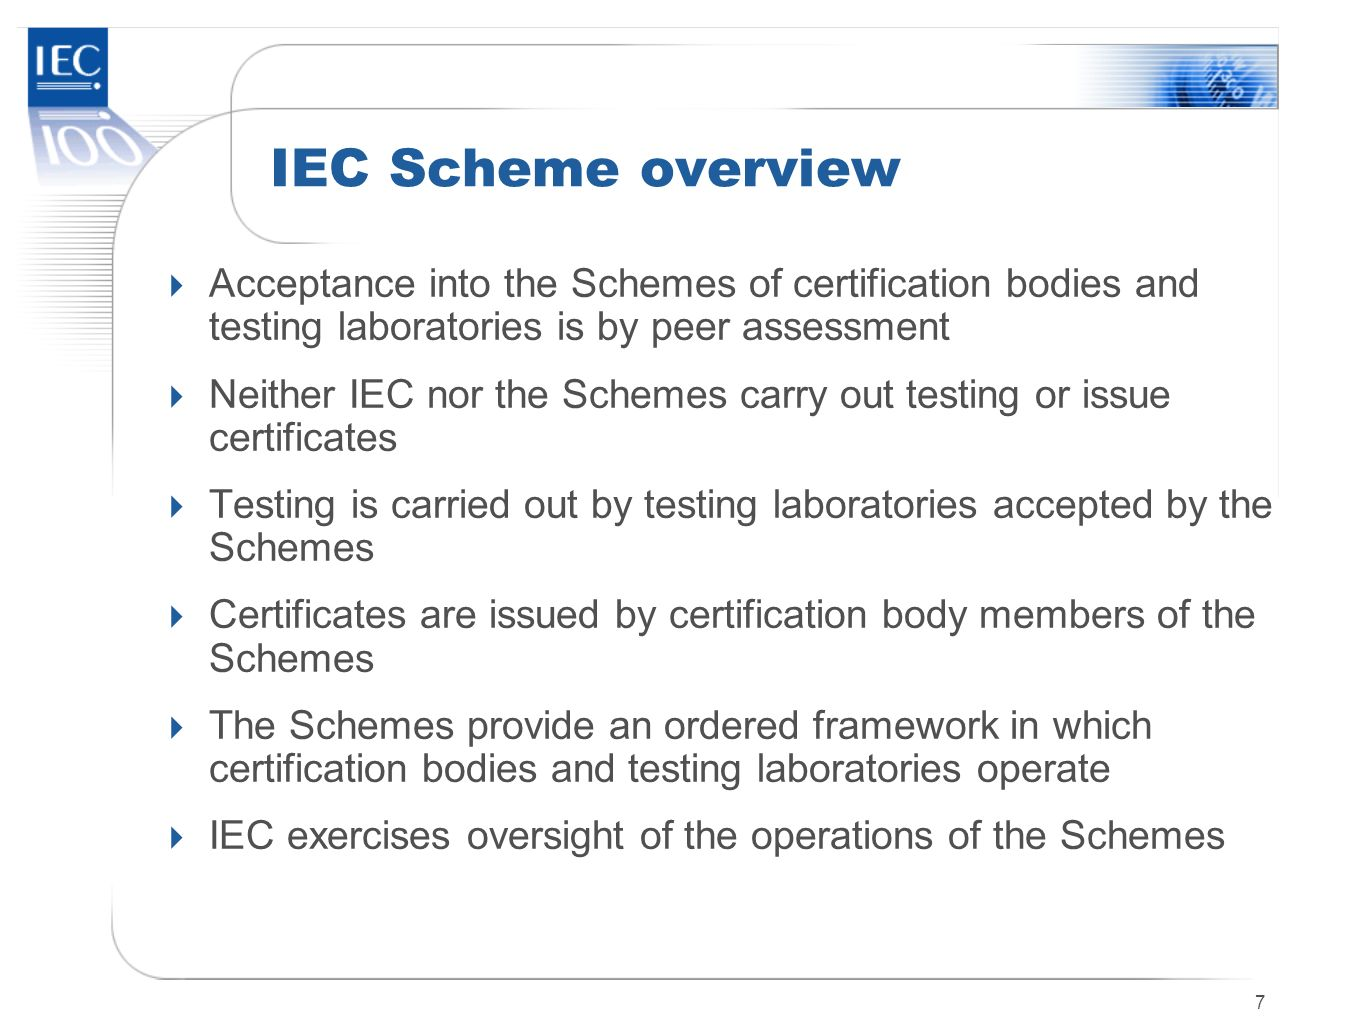 IEC Scheme overview Acceptance into the Schemes of certification bodies and testing laboratories is by peer assessment.